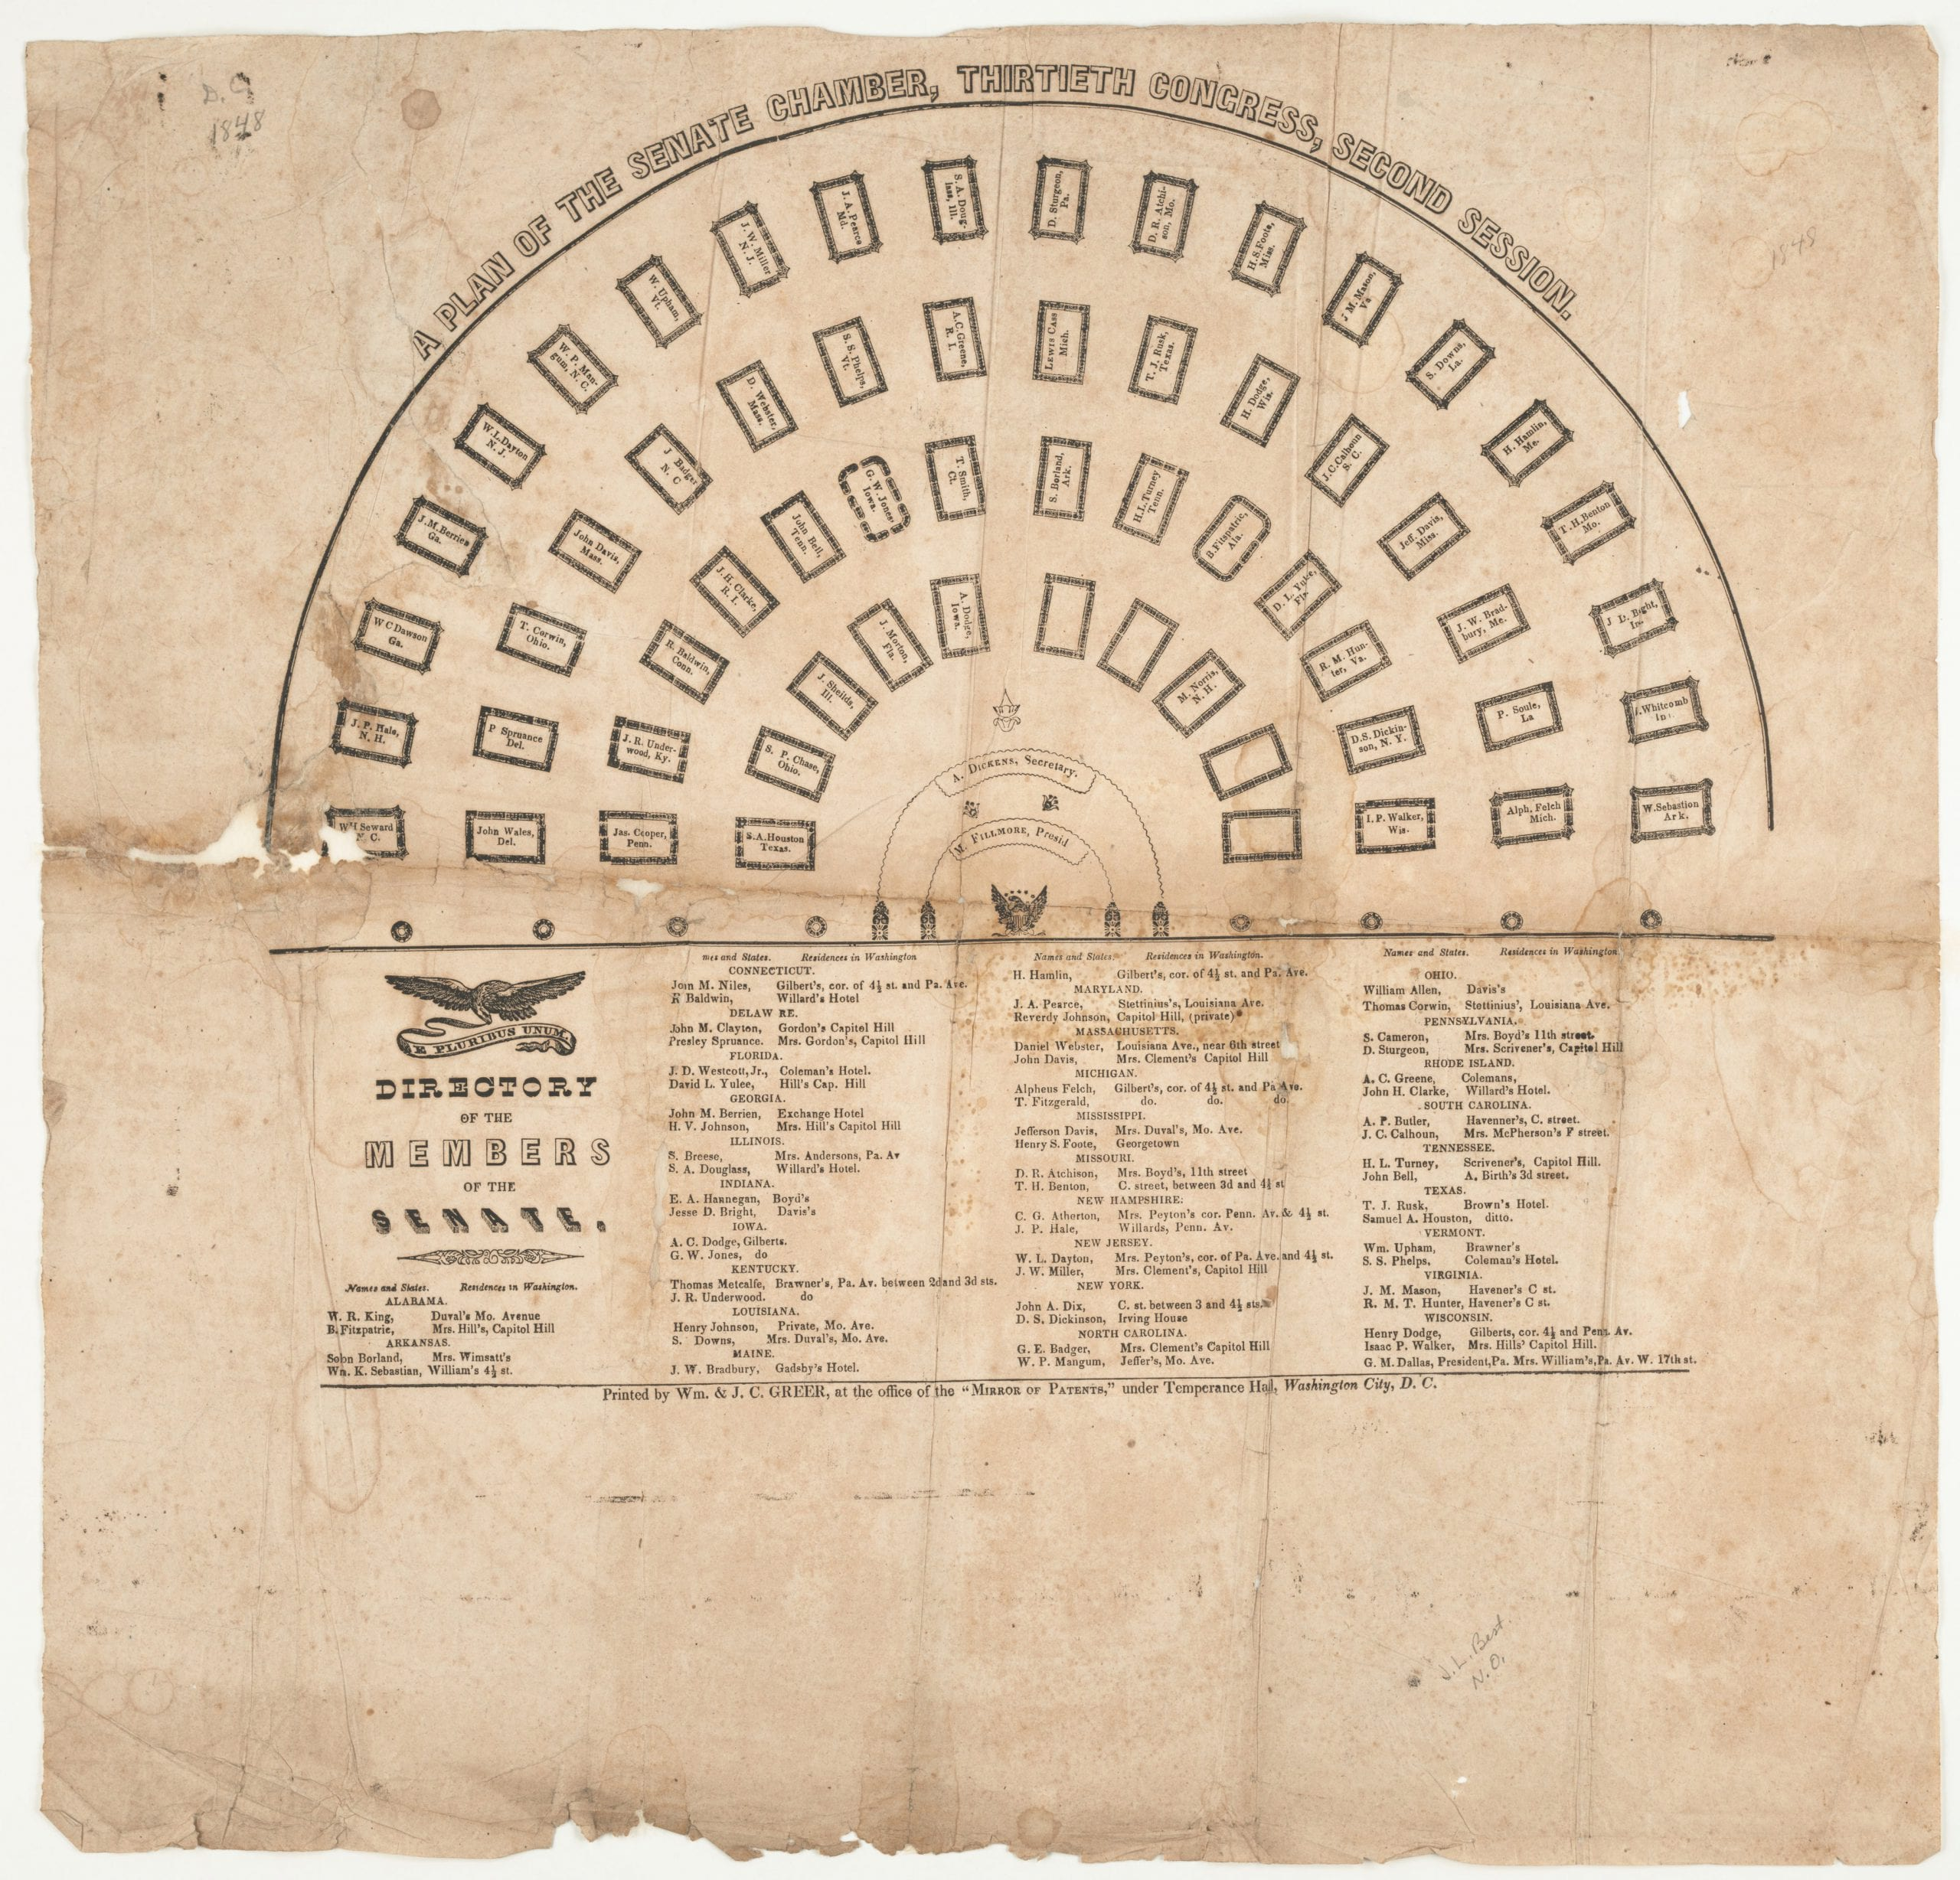 1848 Plan of the Senate Chamber